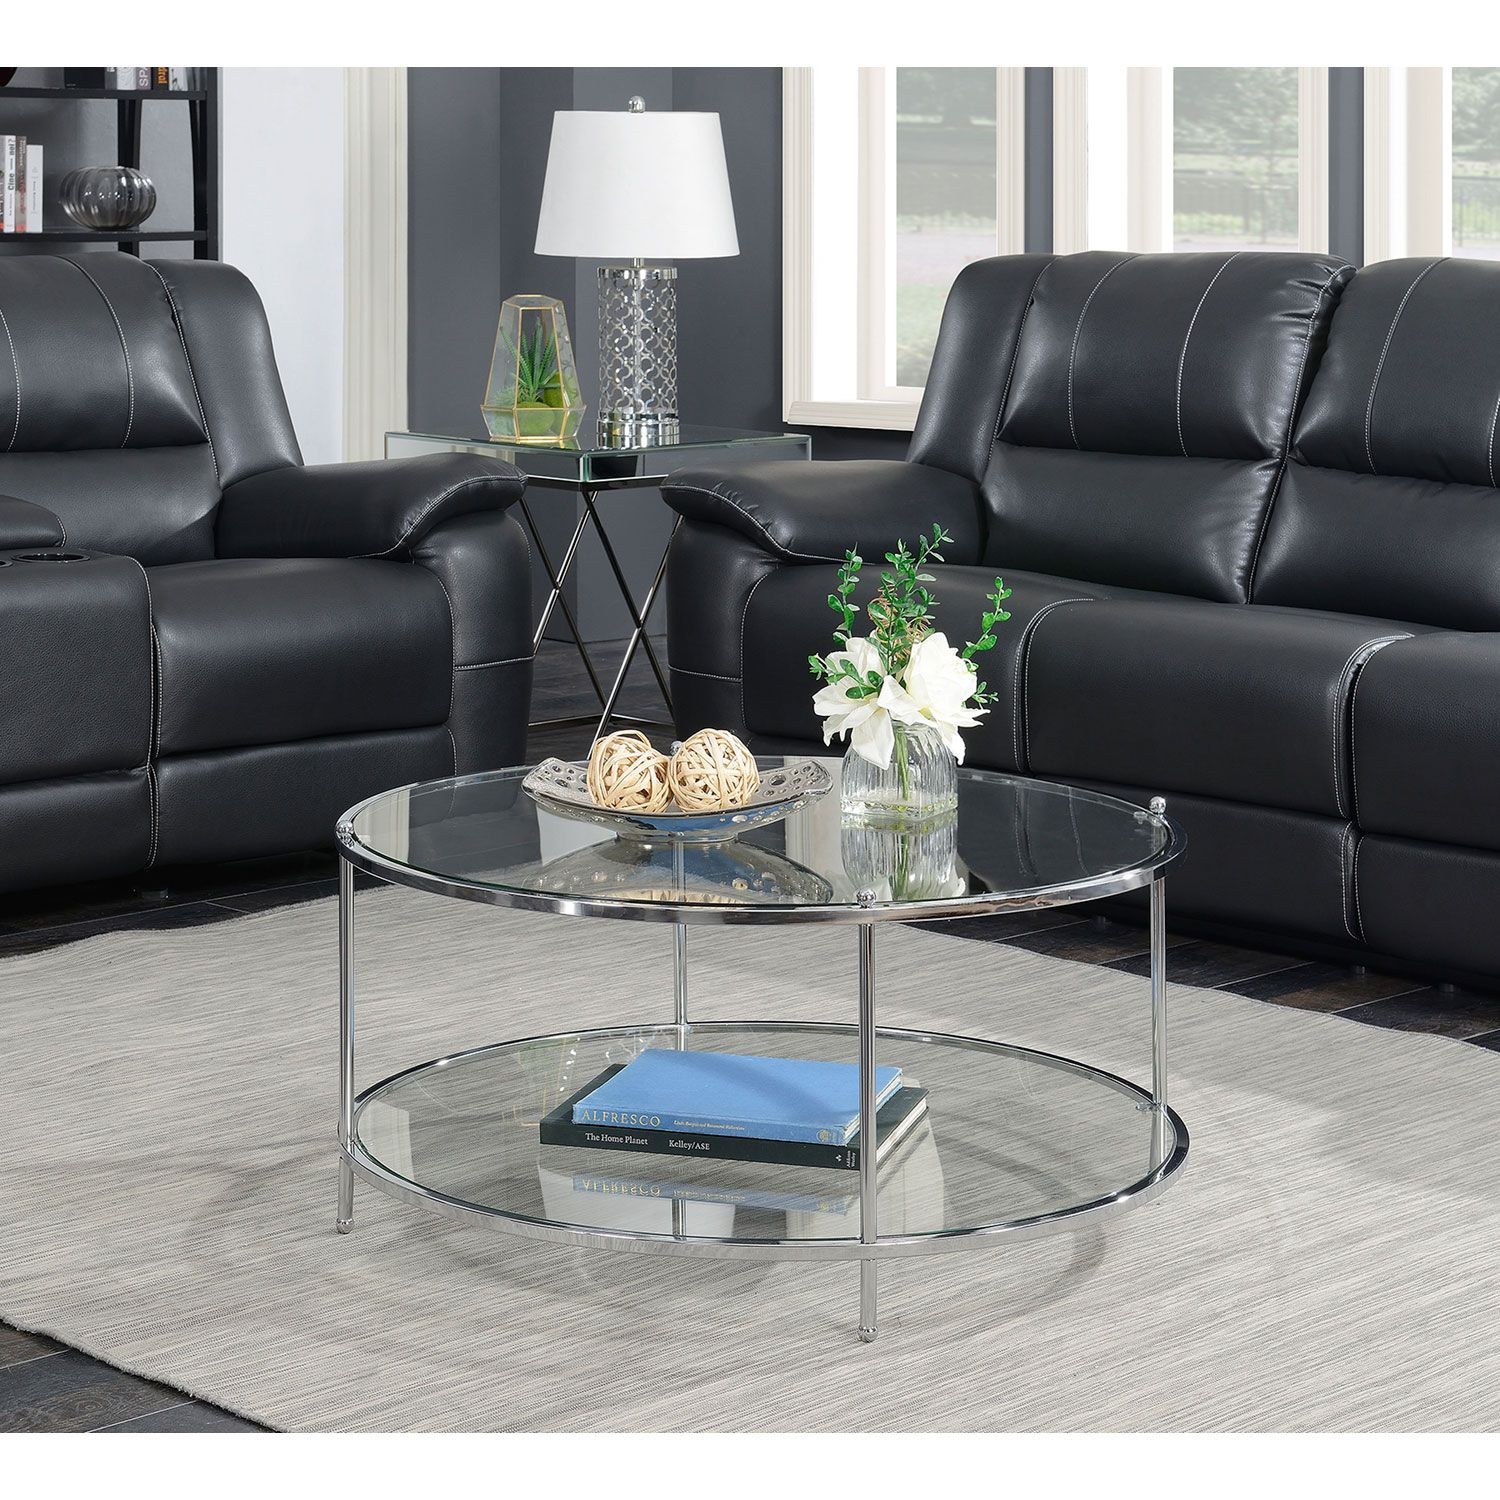 Convenience Concepts Royal Crest 2 Tier Round Glass Coffee Table In Clear Glass And Chrome Frame 134036 Bellacor In 2021 Round Glass Coffee Table Glass Coffee Table Decor Coffee Table [ 1500 x 1500 Pixel ]